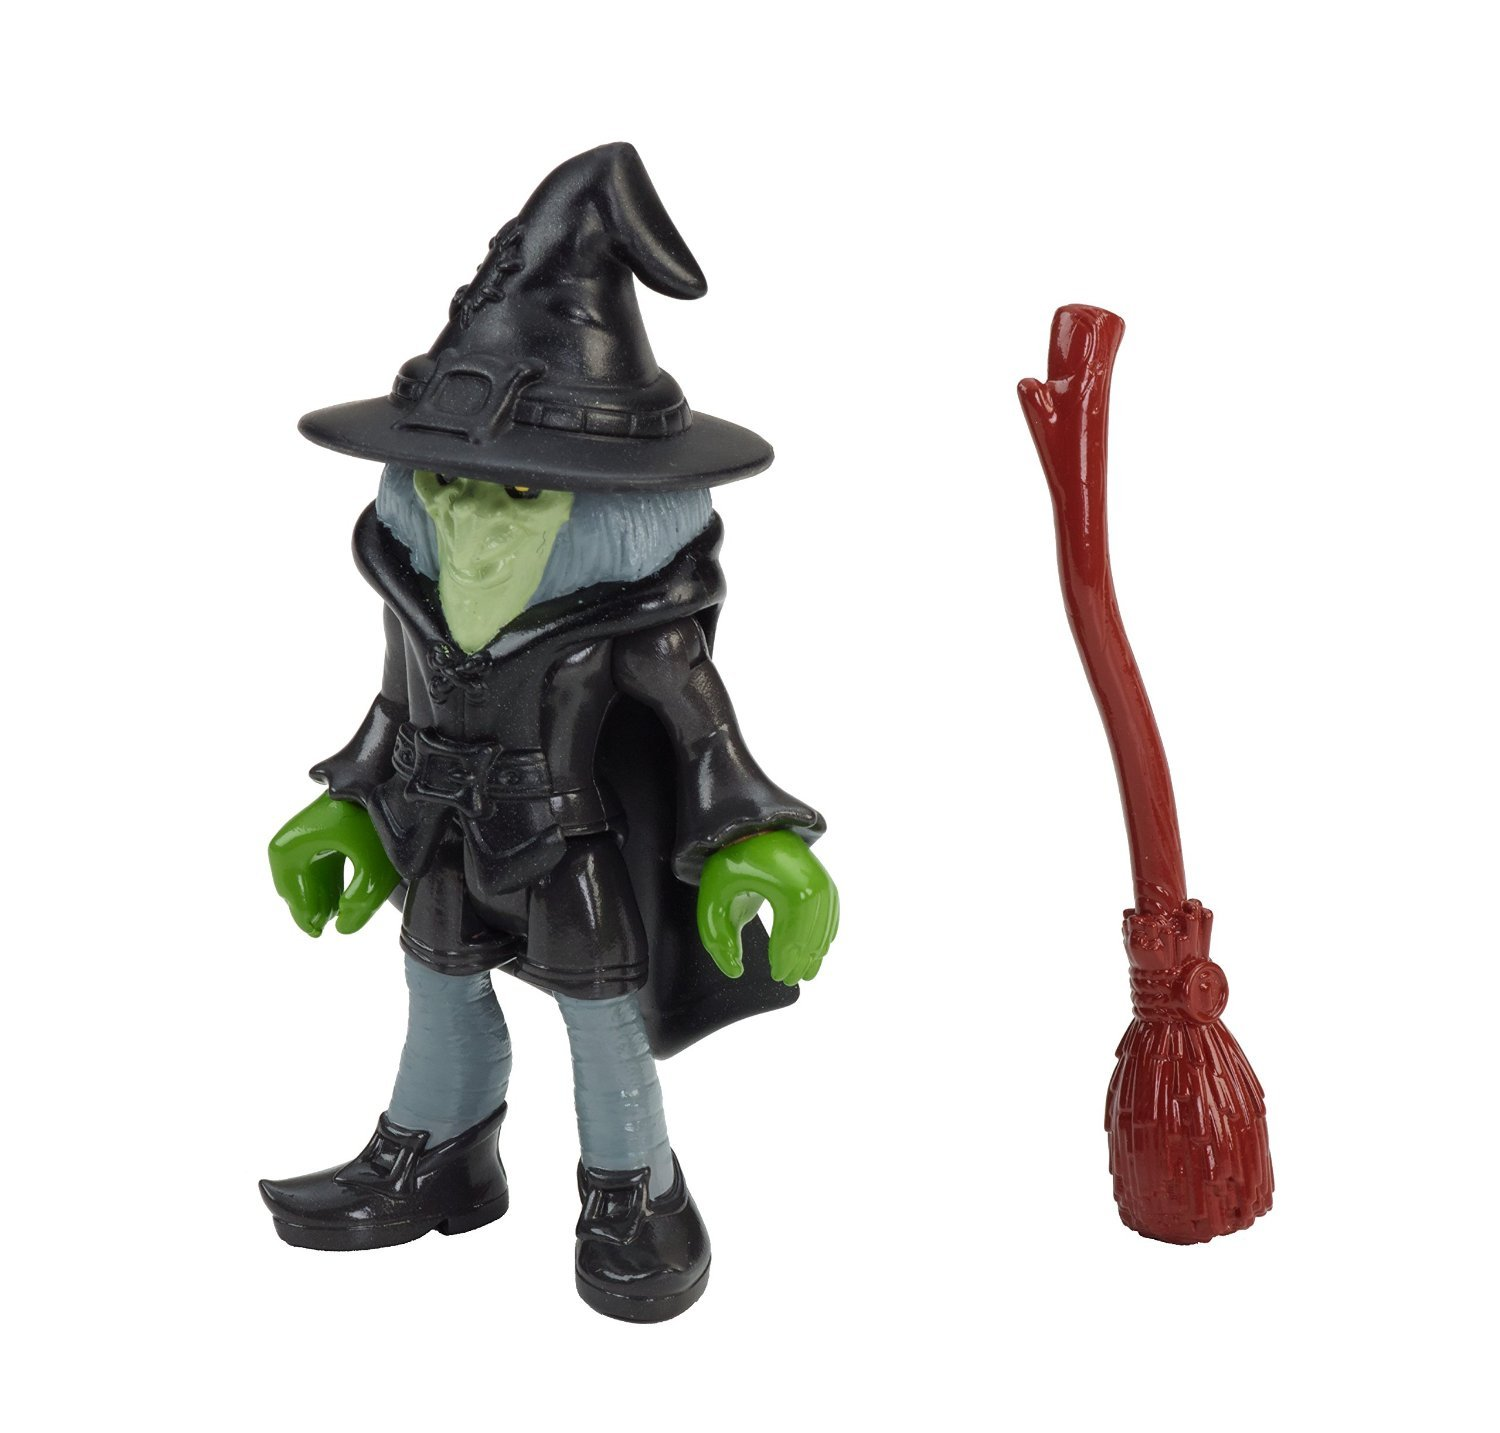 Imaginext Fisher-Price Collectible Figures Series 4 Classic Witch Fisher Price SG/_B016K1D7WA/_US